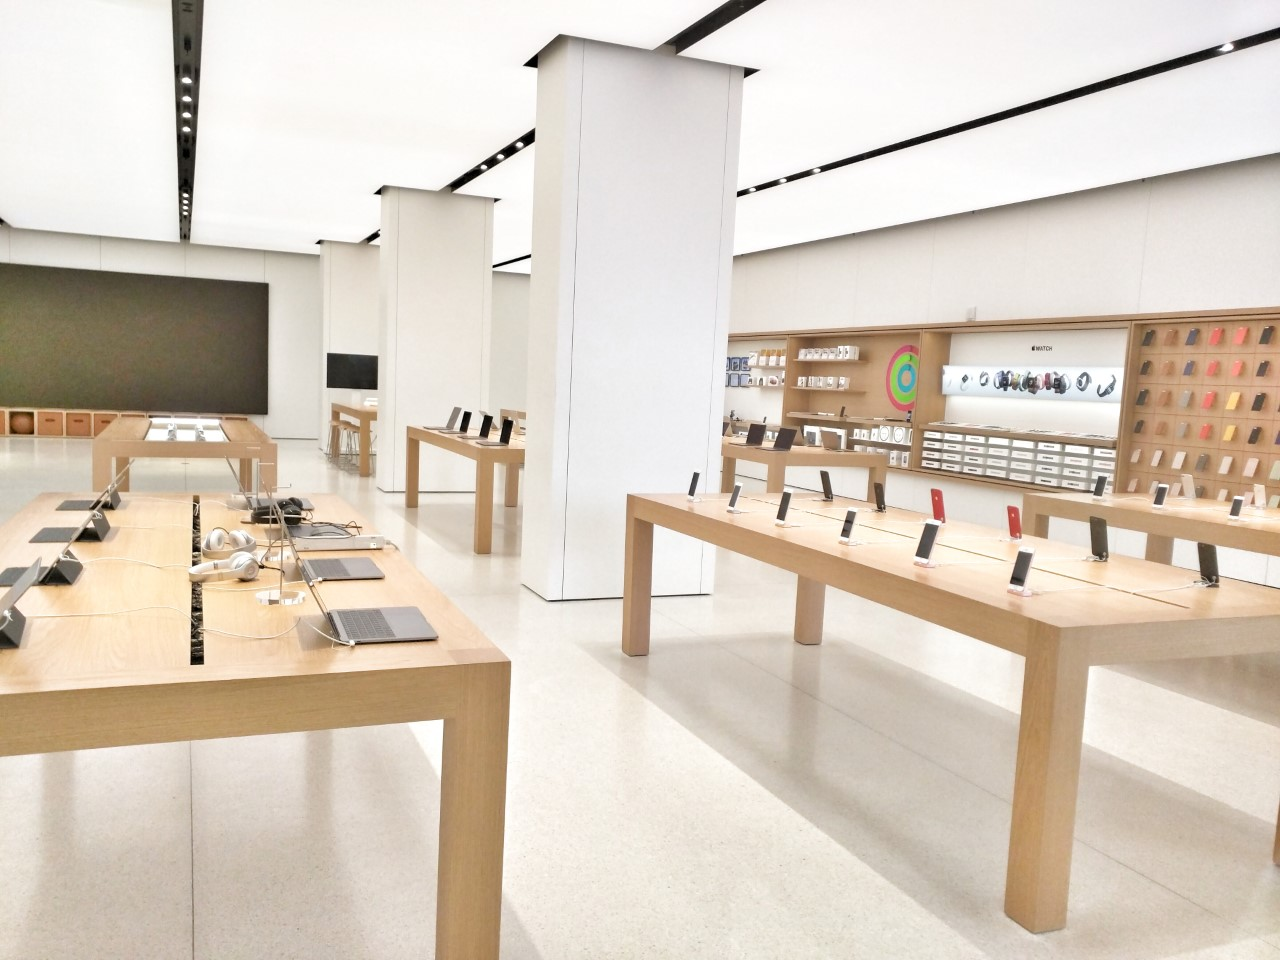 Apple to Reopen Stores Outside China Starting April 5th, Reopening Stores in Staggered Intervals